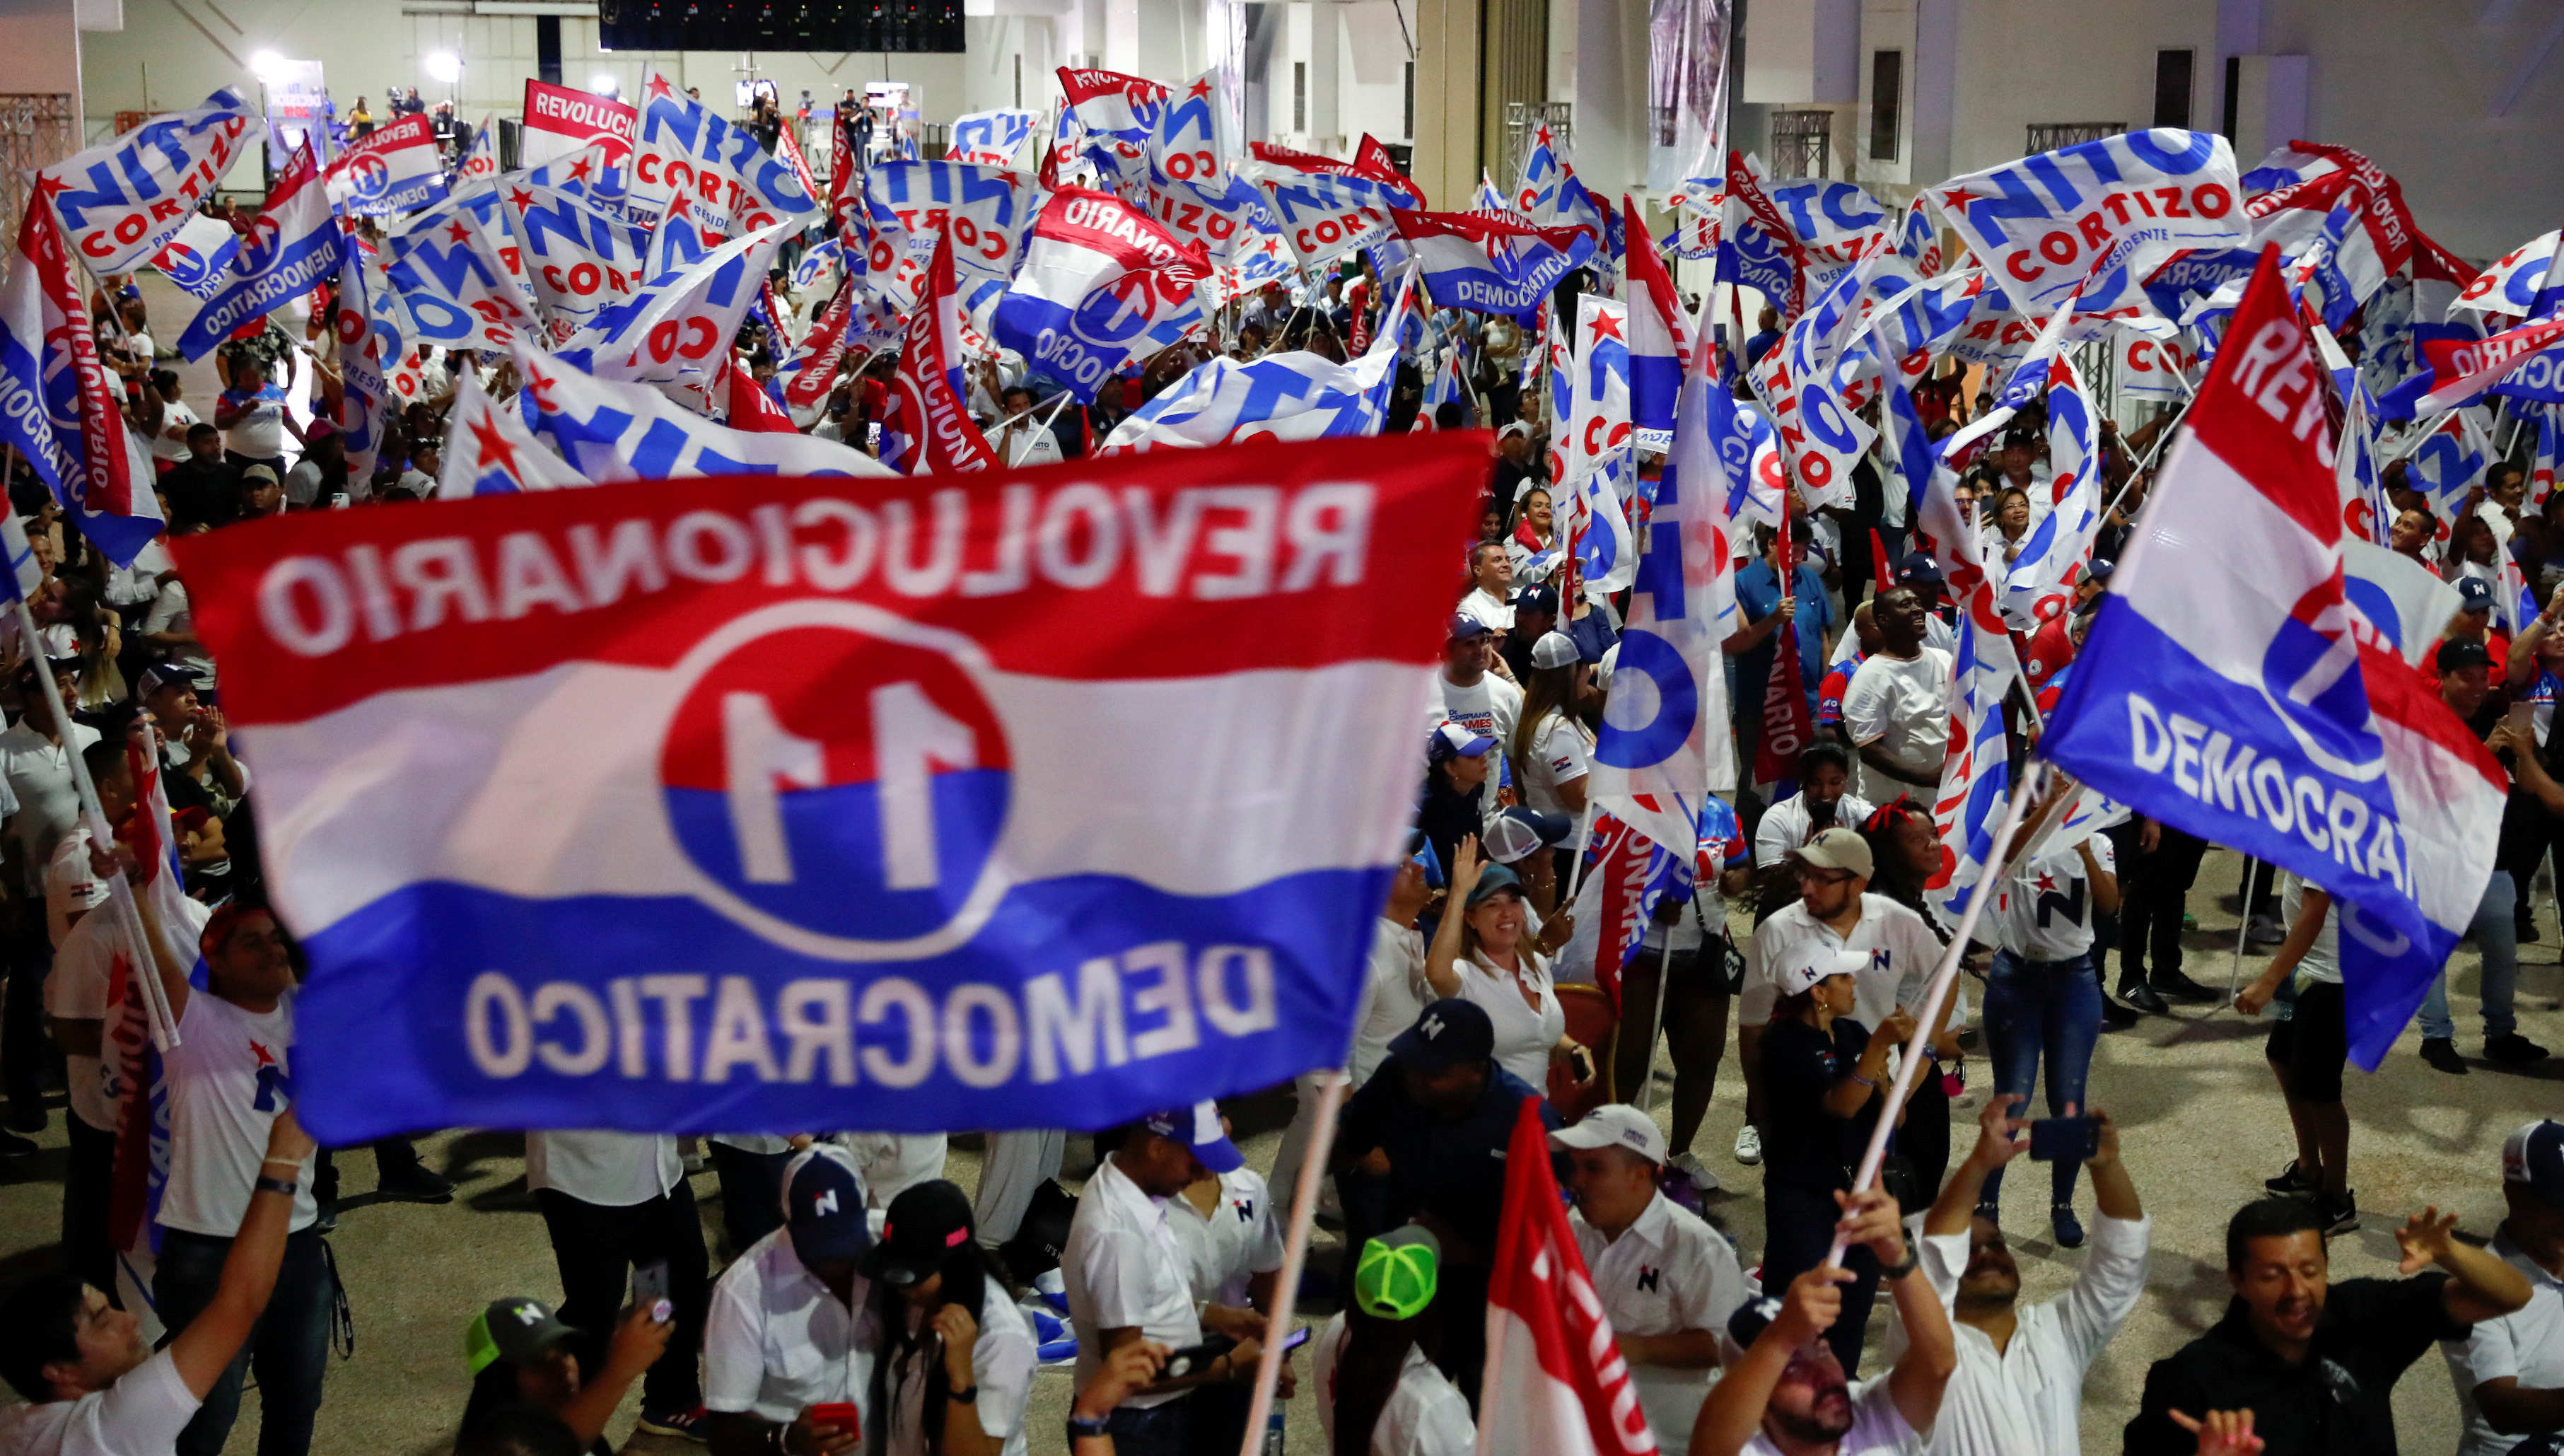 Supporters of presidential candidate Laurentino Cortizo of the Democratic Revolutionary Party (PRD) wave flags as they wait for Cortizo to make an announcement in Panama City, Panama, May 5, 2019.